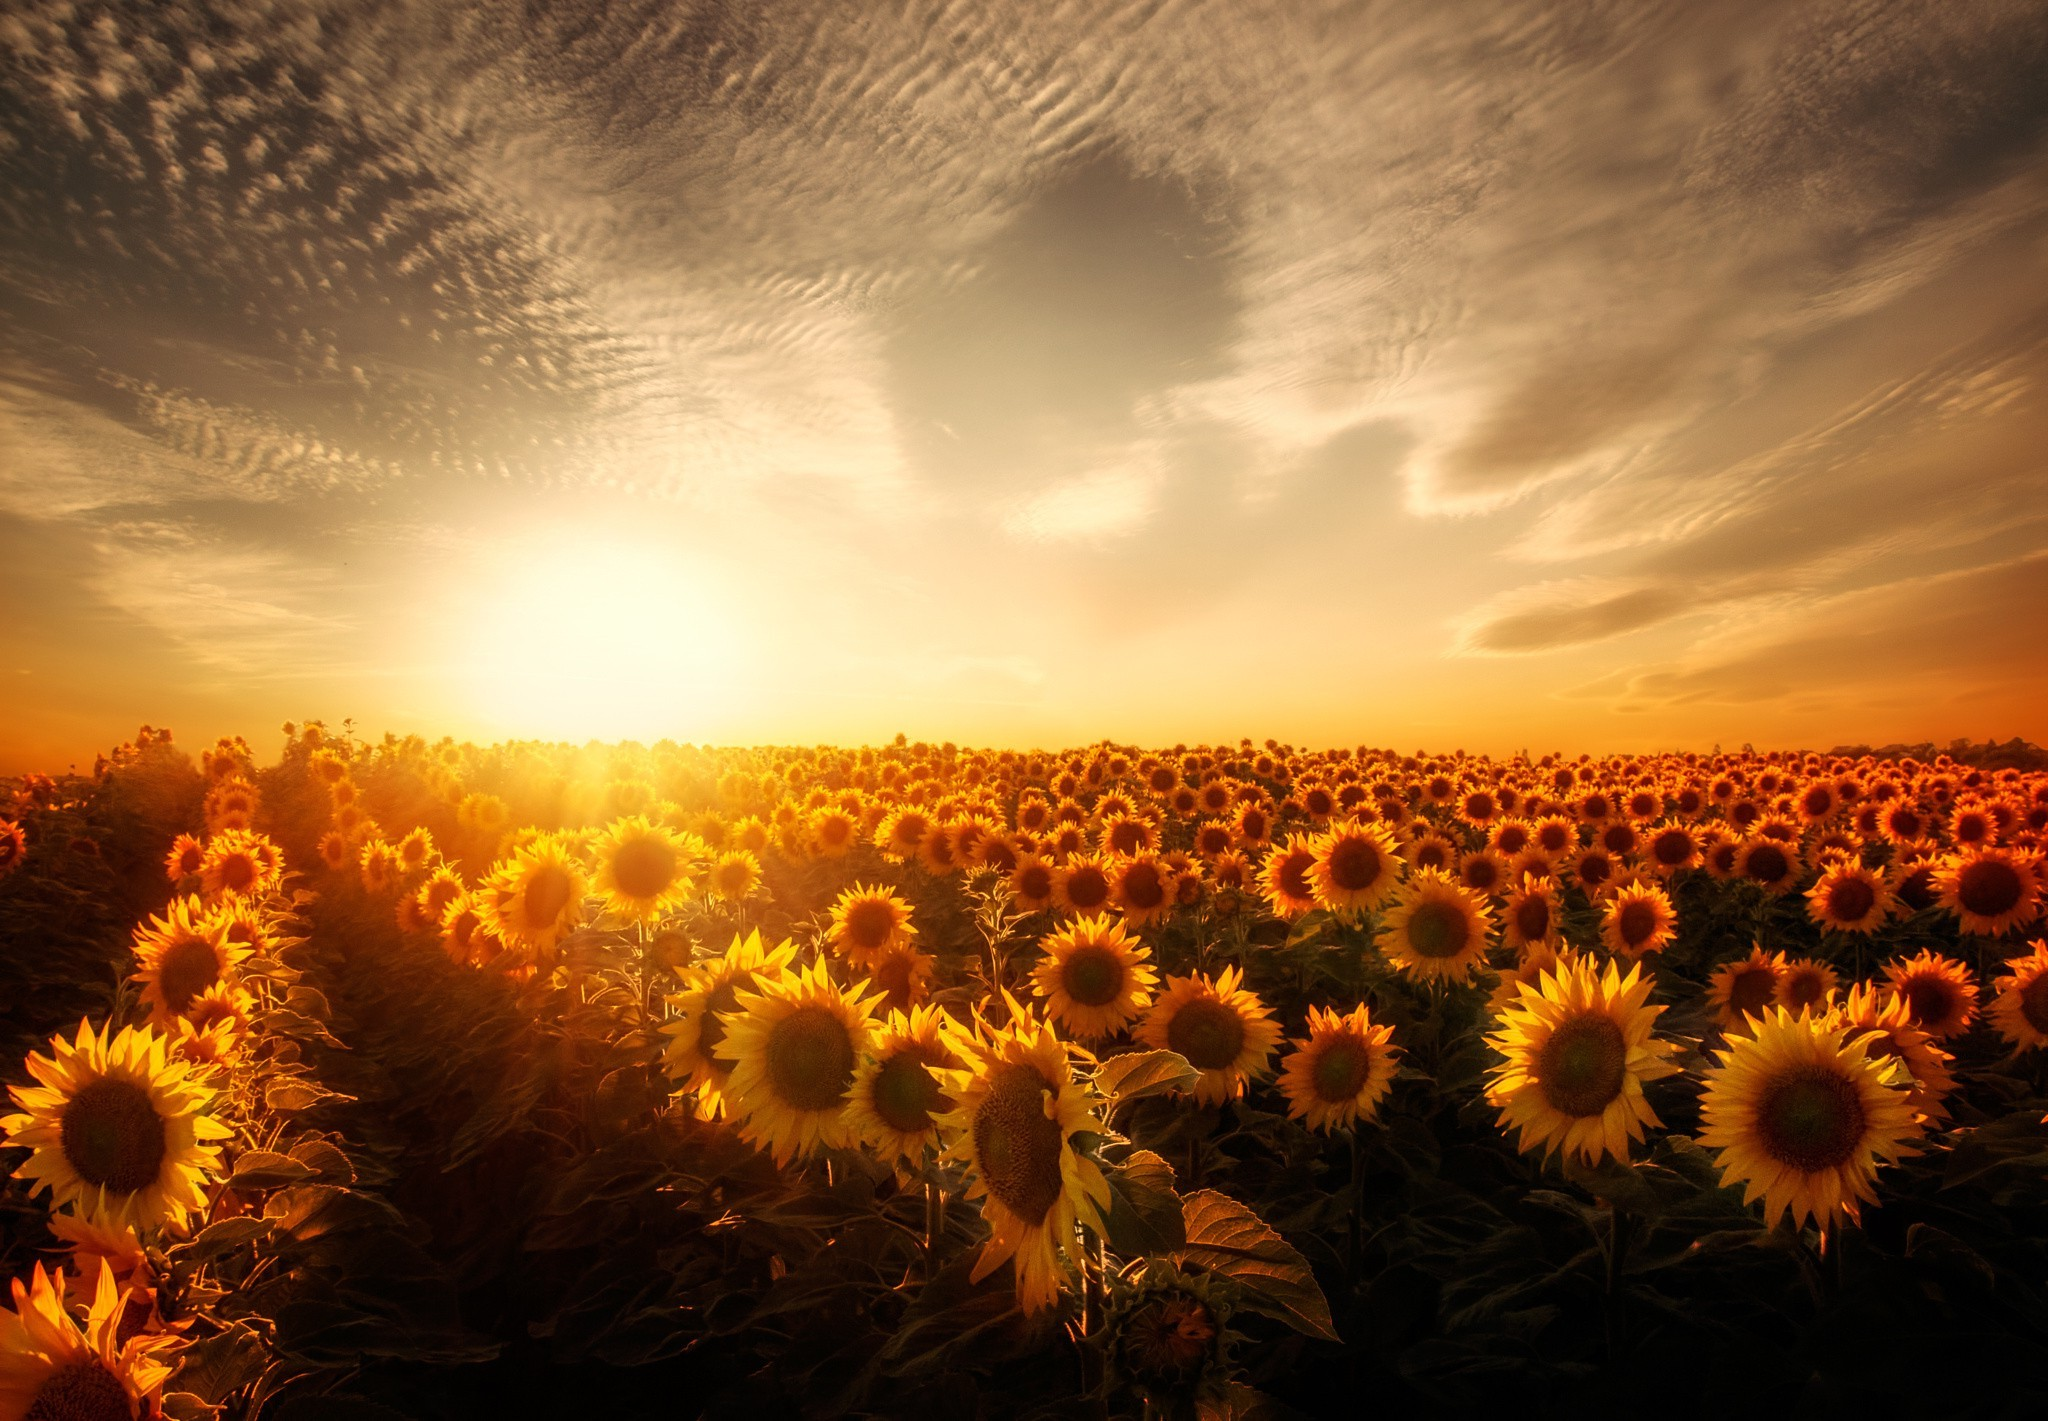 Sunflowers Sunset, HD Nature, 4k Wallpapers, Images